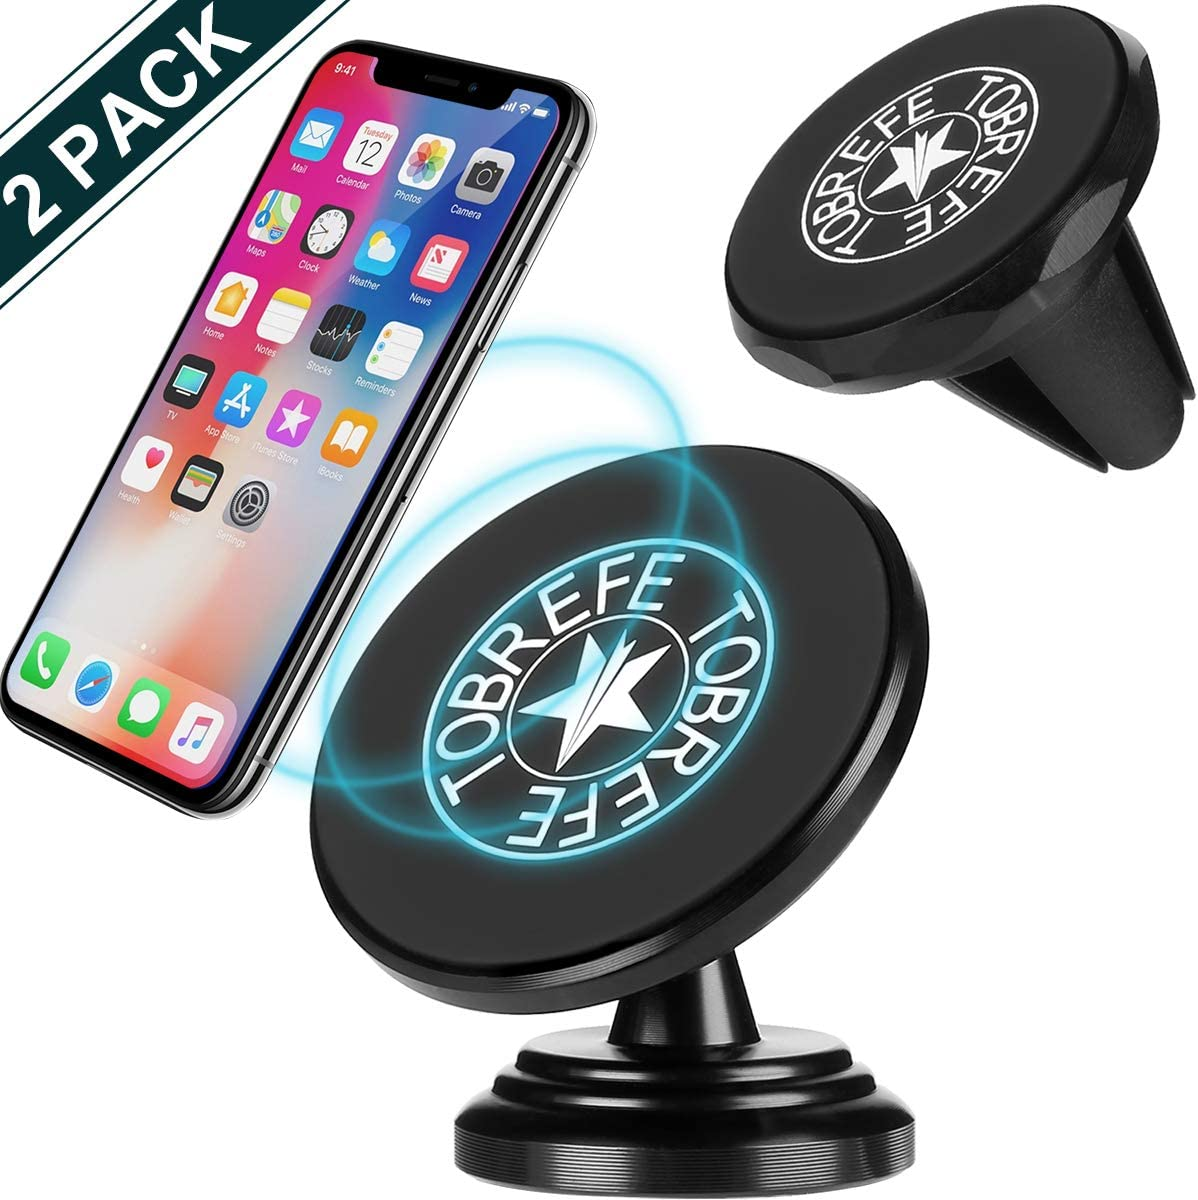 4 Metal Plates Magnetic Car Phone Mount Phone Holder for Car Air Vent Clip Grip and Dashboard Adhesive Mount 360/° Rotation Phone Magnetic Car Cradle Holder Compatible with All Phones and Tablets